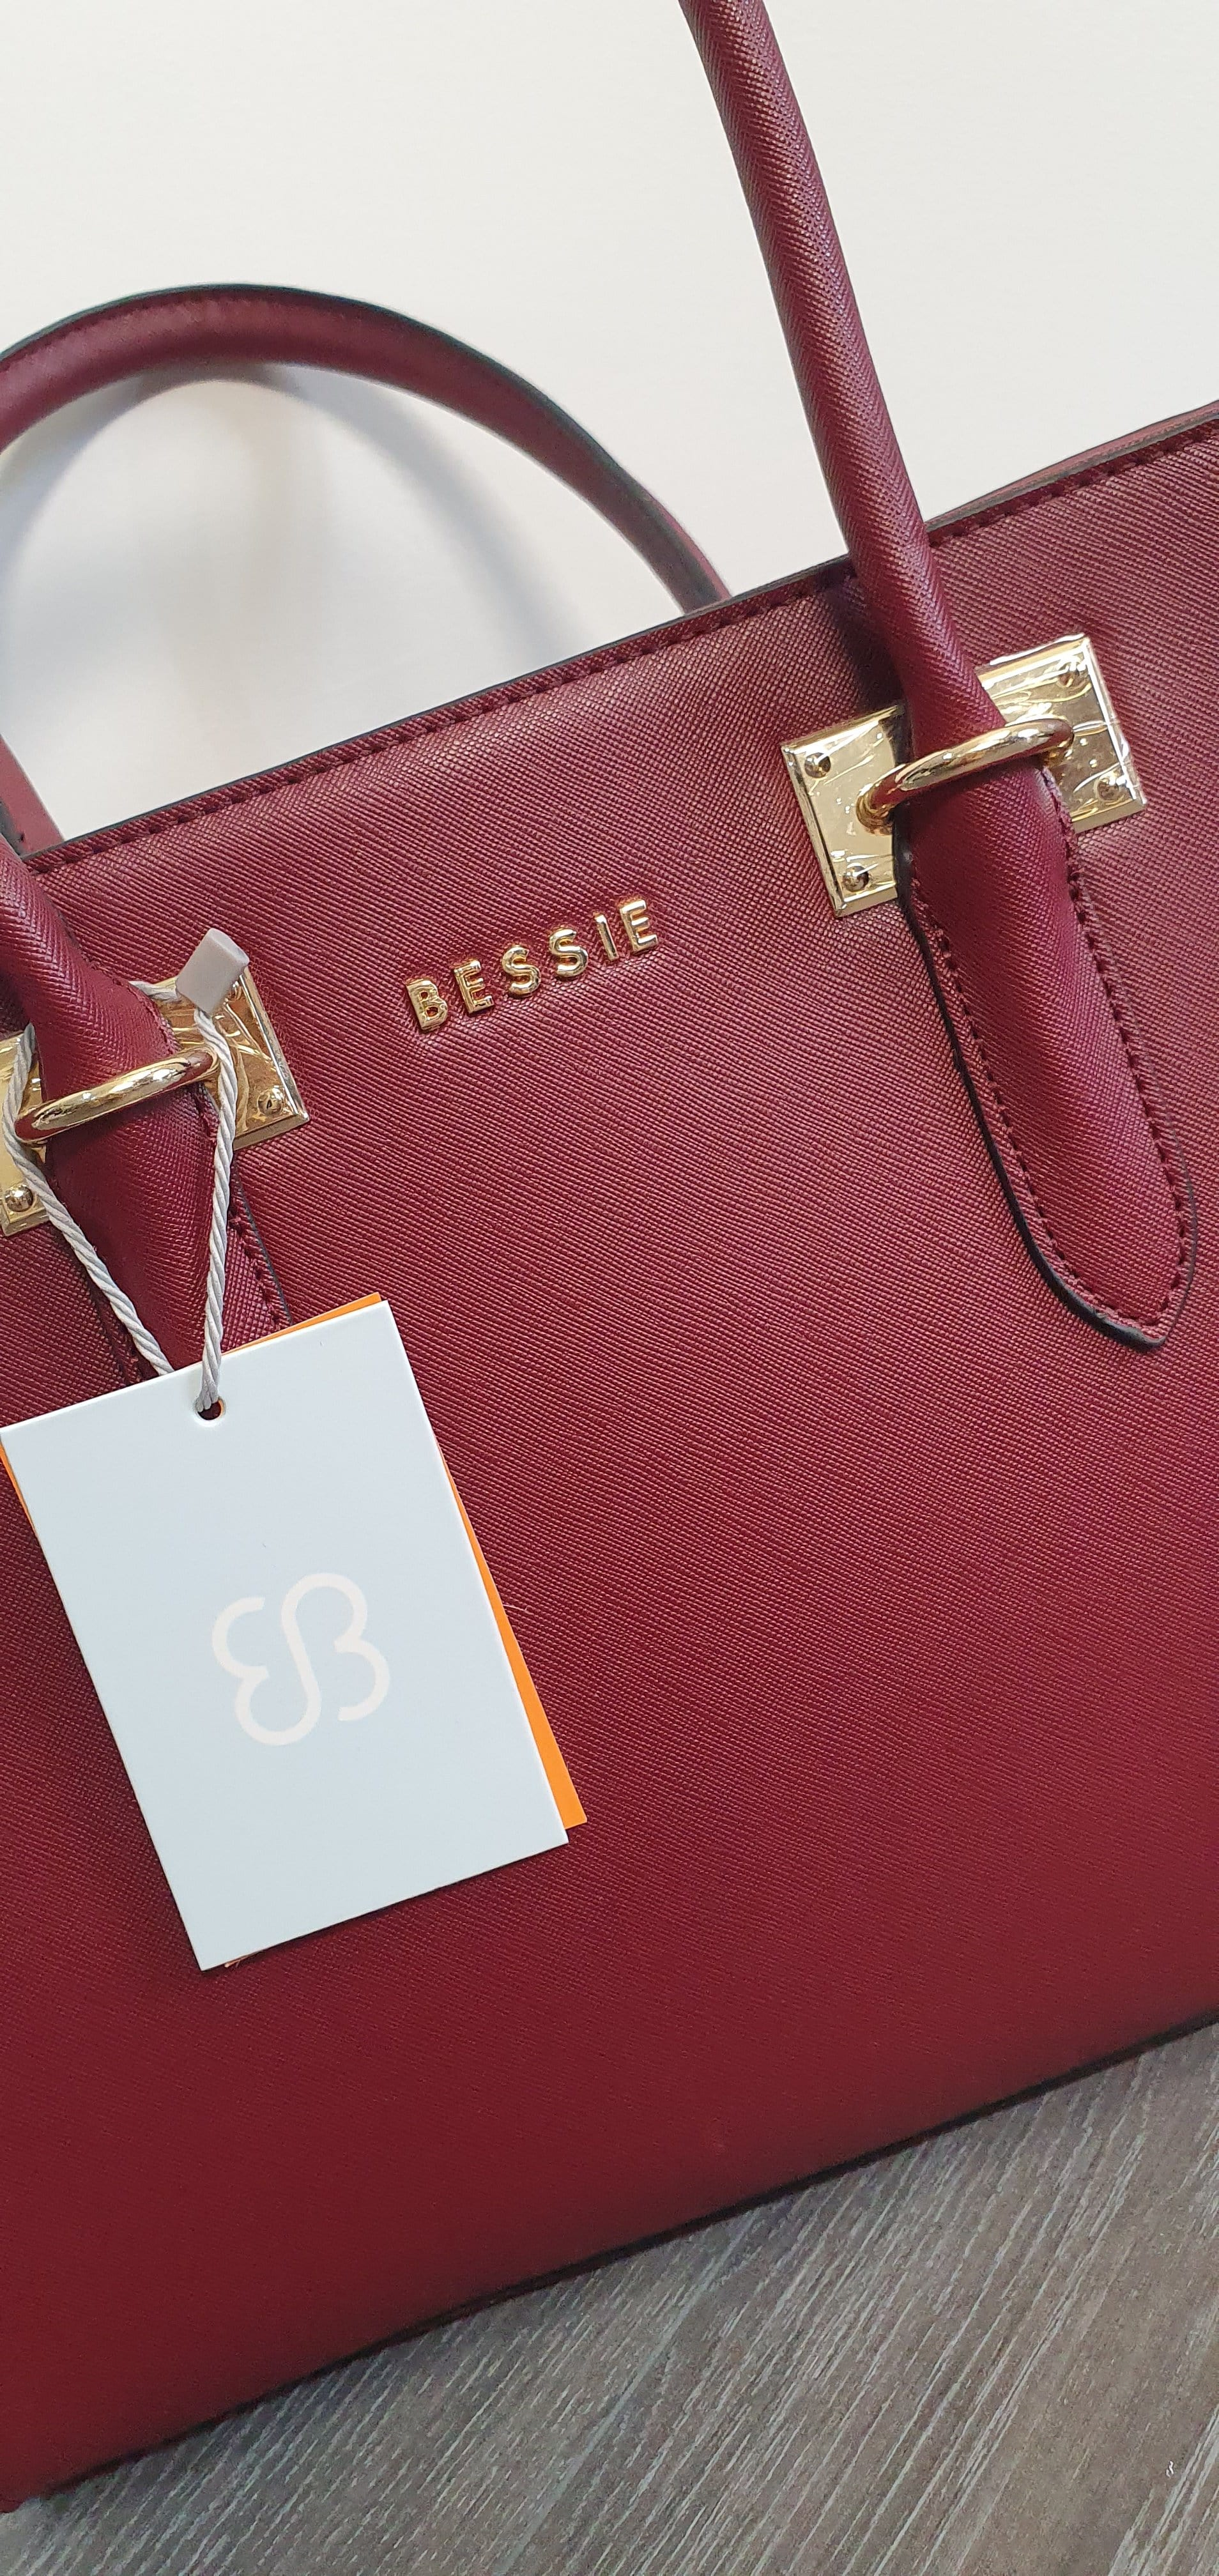 The Bessi Tote handbag